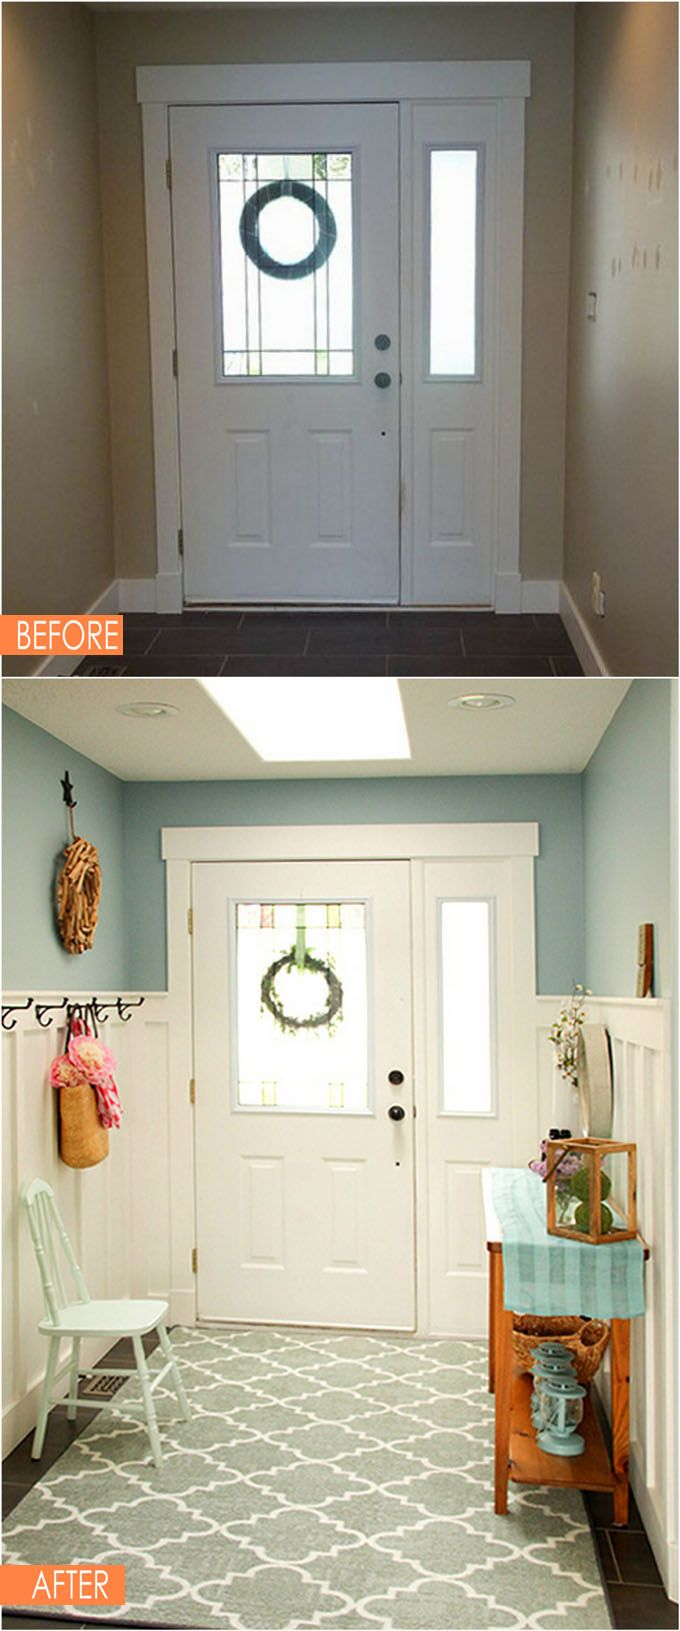 best 25+ before after ideas on pinterest | before after furniture